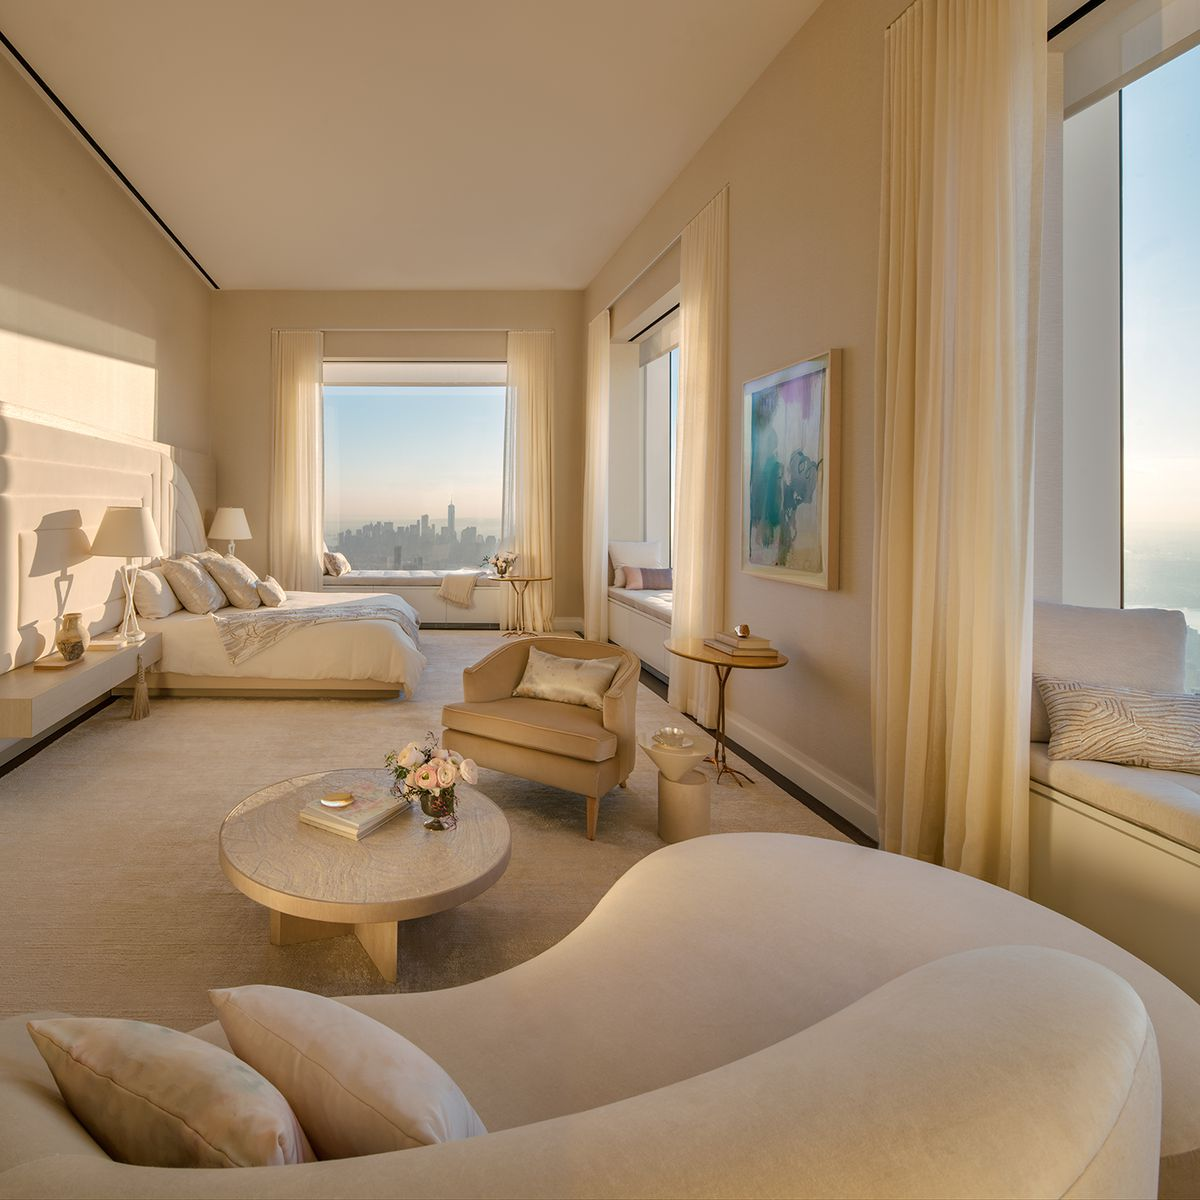 2 Bedroom Apartment In New York: Peek Inside 432 Park Avenue's $40M, 92nd-floor Penthouse